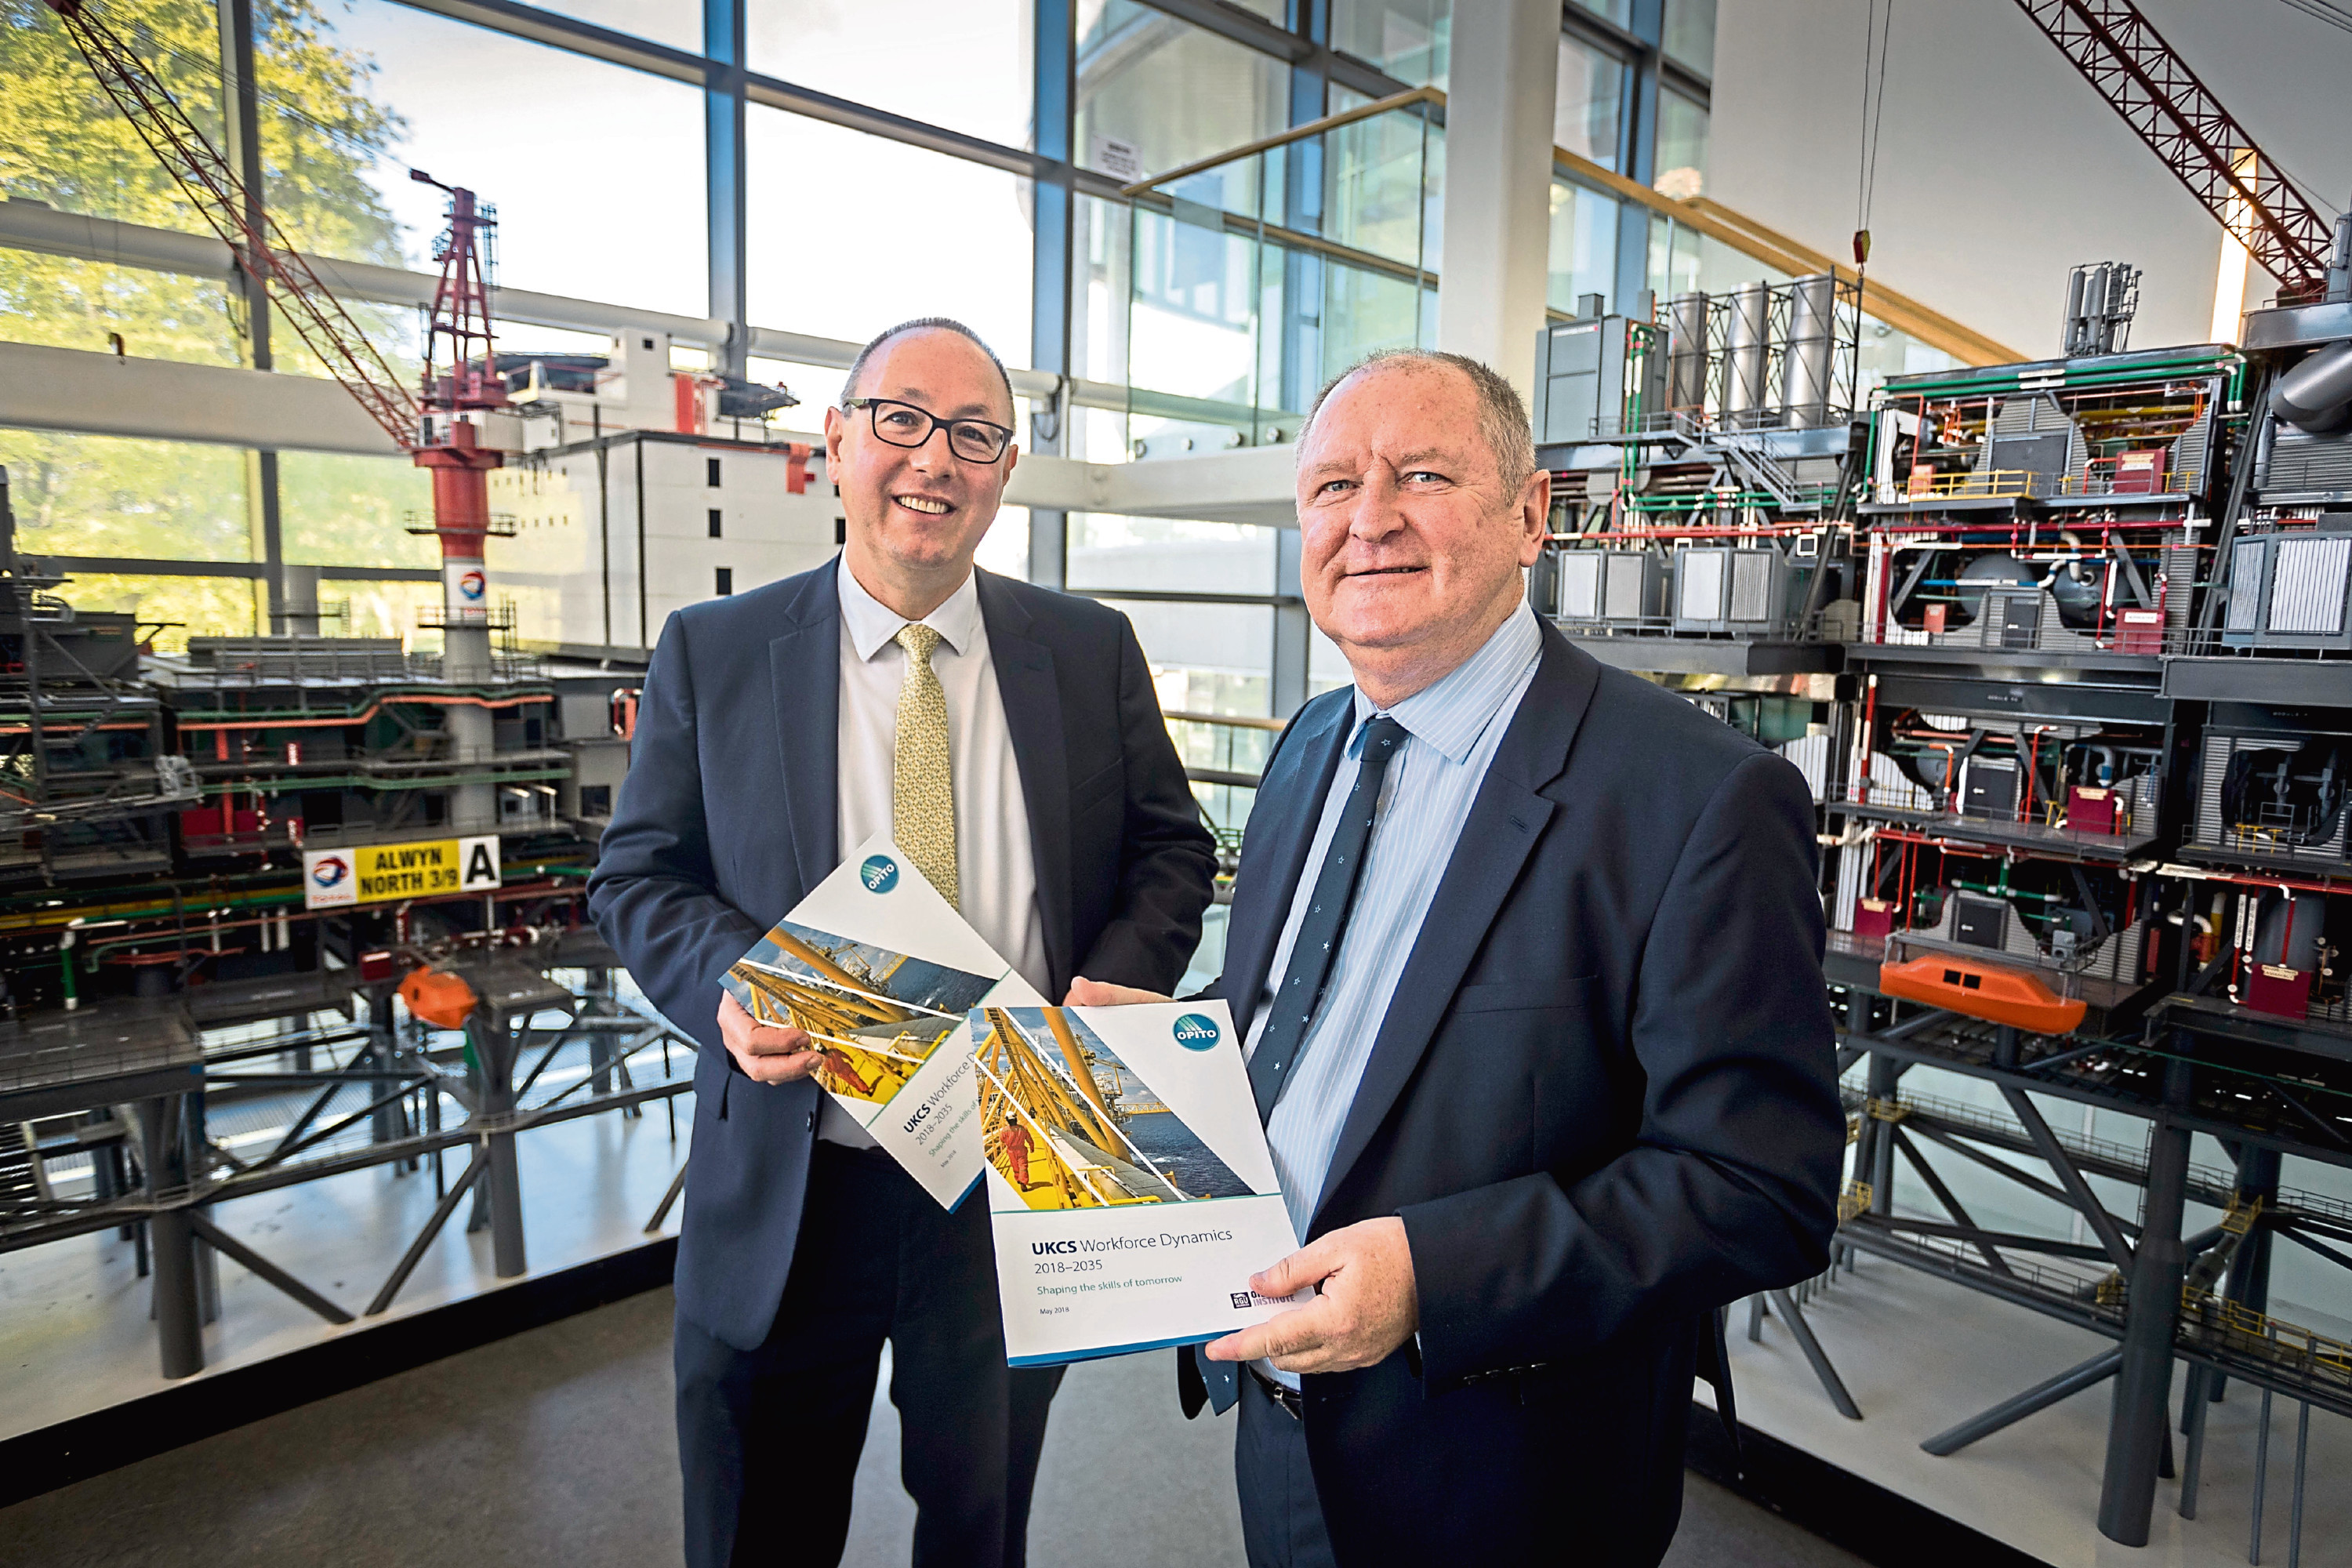 Paul de Leeuw, of the RGU Oil and Gas Institure, left, with John McDonald, of OPITO>